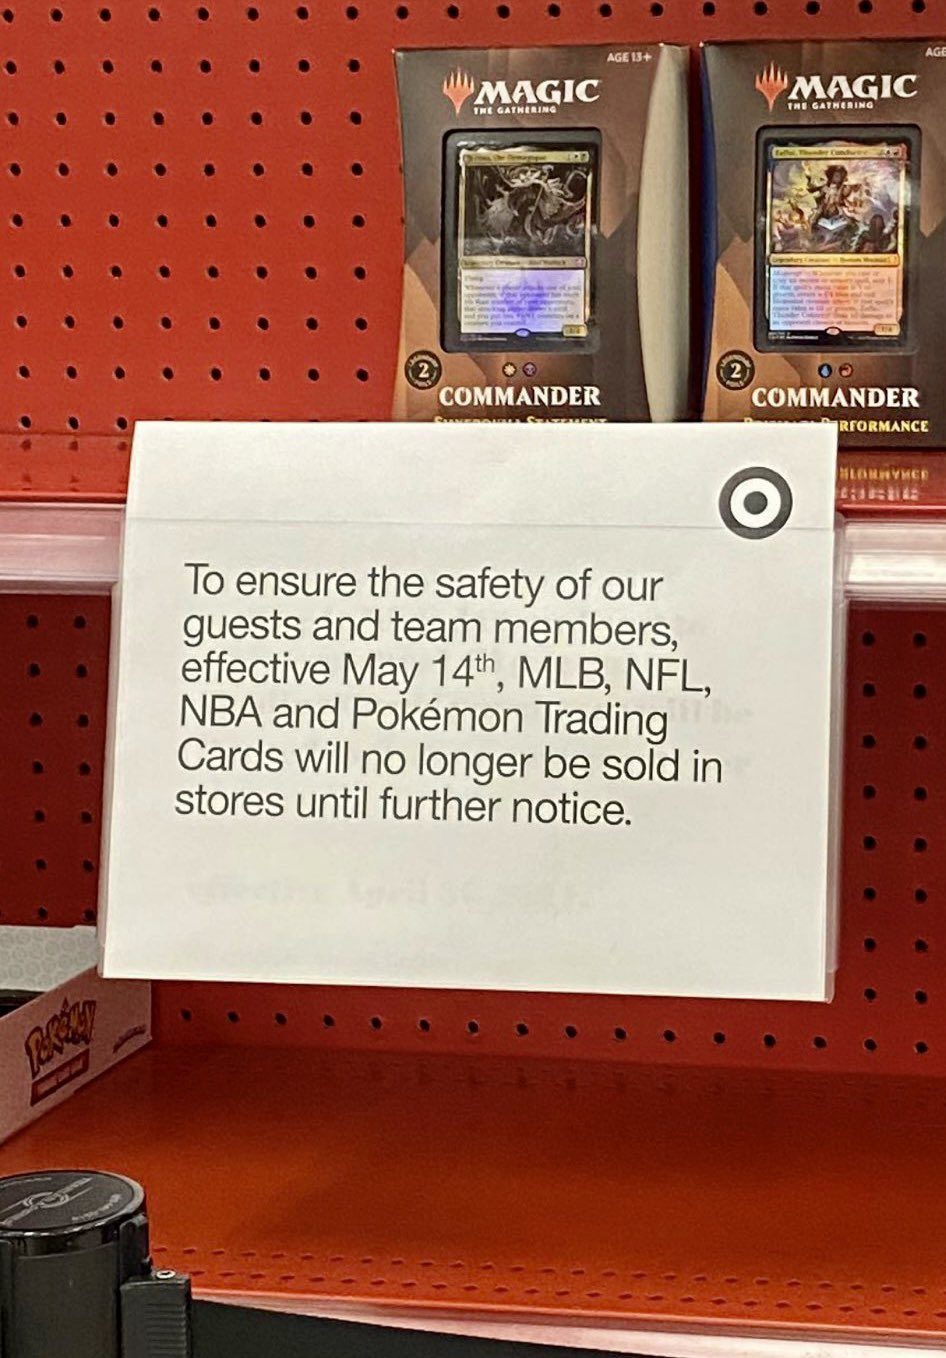 What Is Up with the Trading Cards Sales Ban?